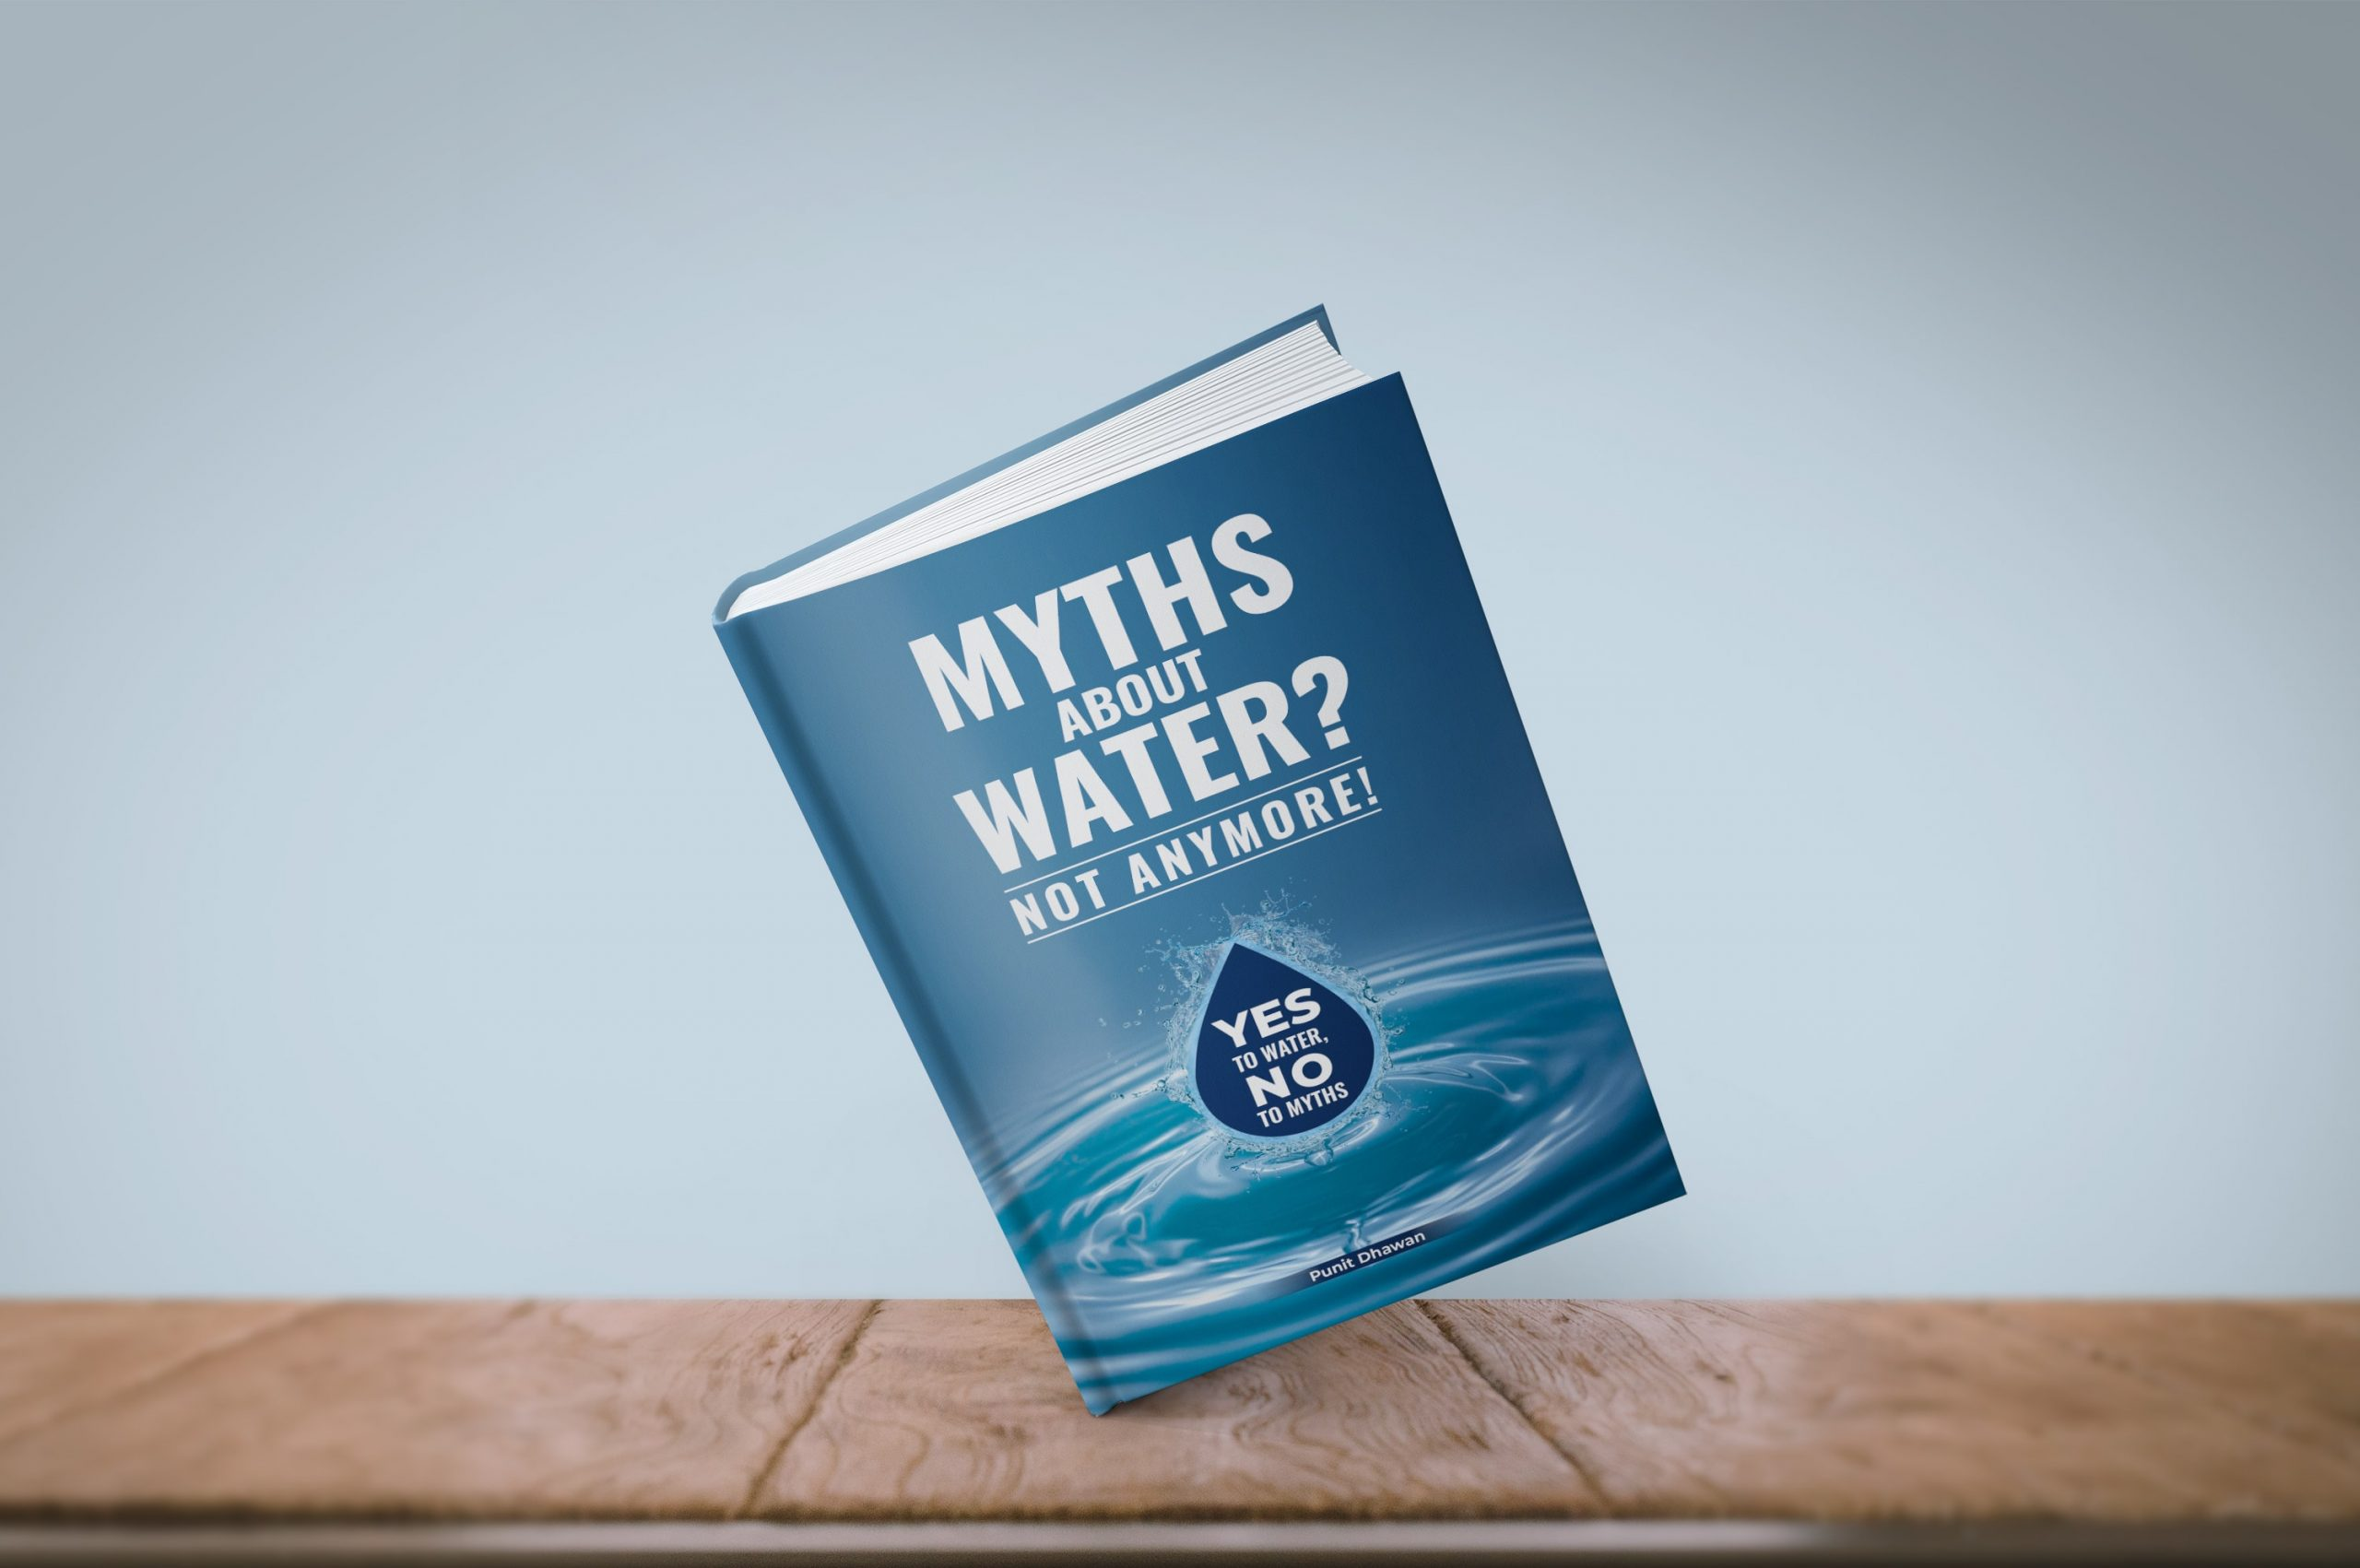 Myths About Water Not Anymore! by Punit Dhawan